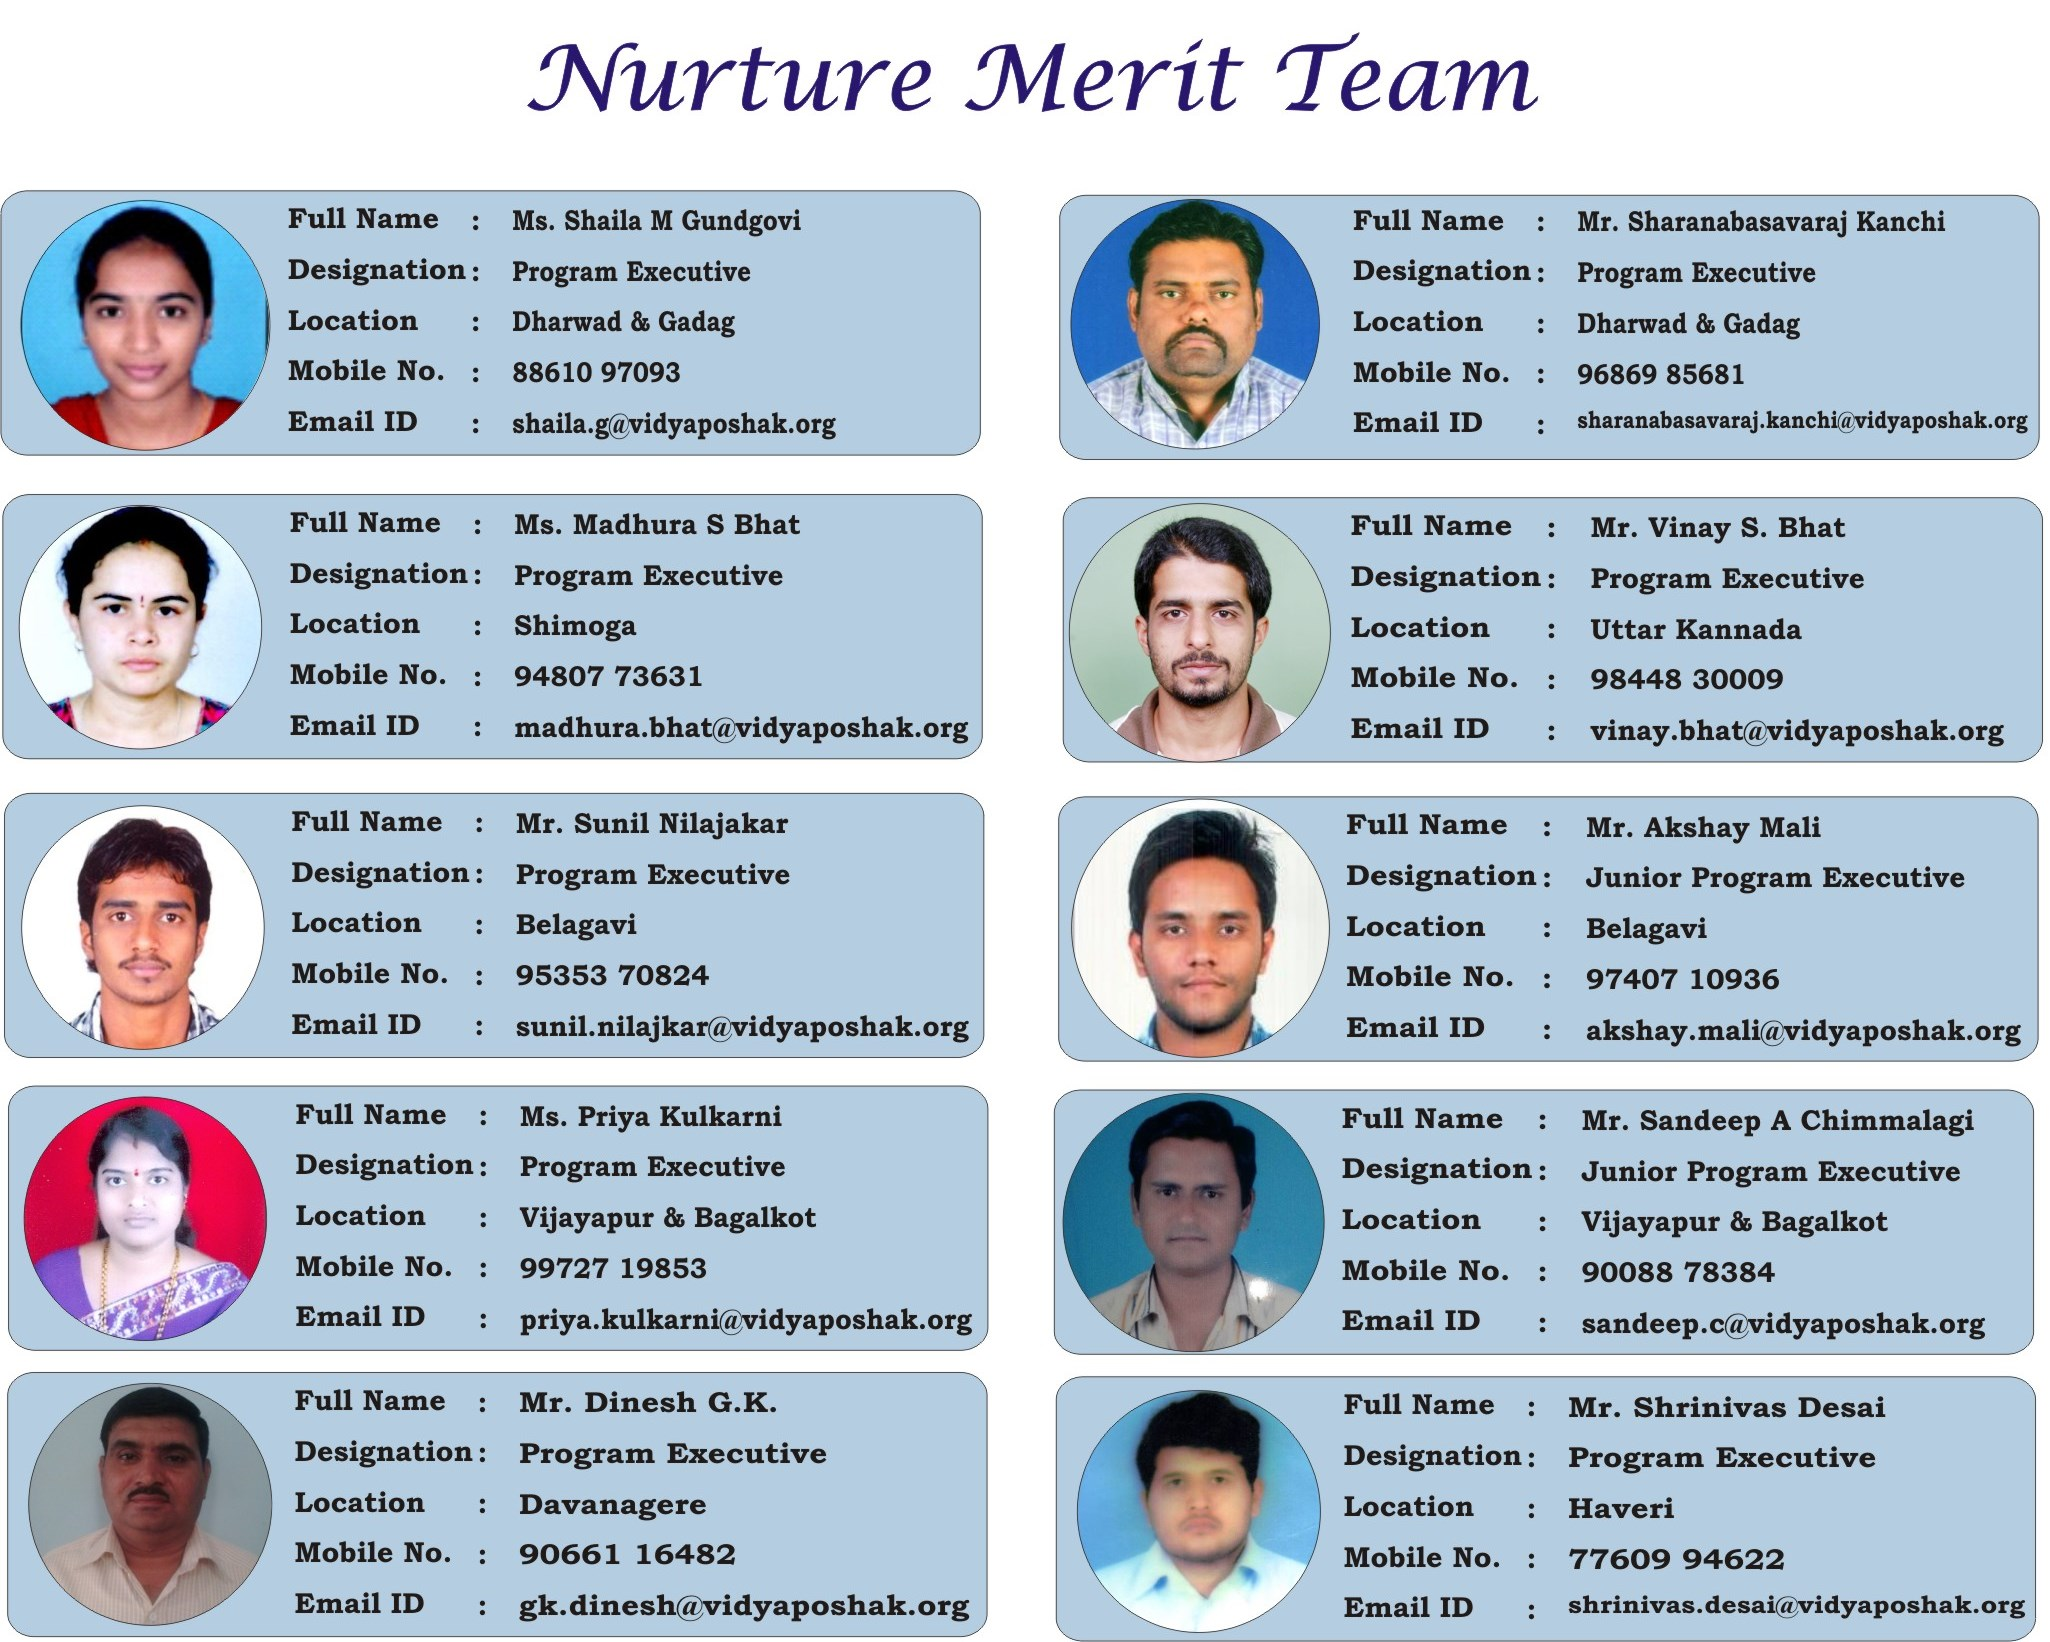 Nurture Merit Team